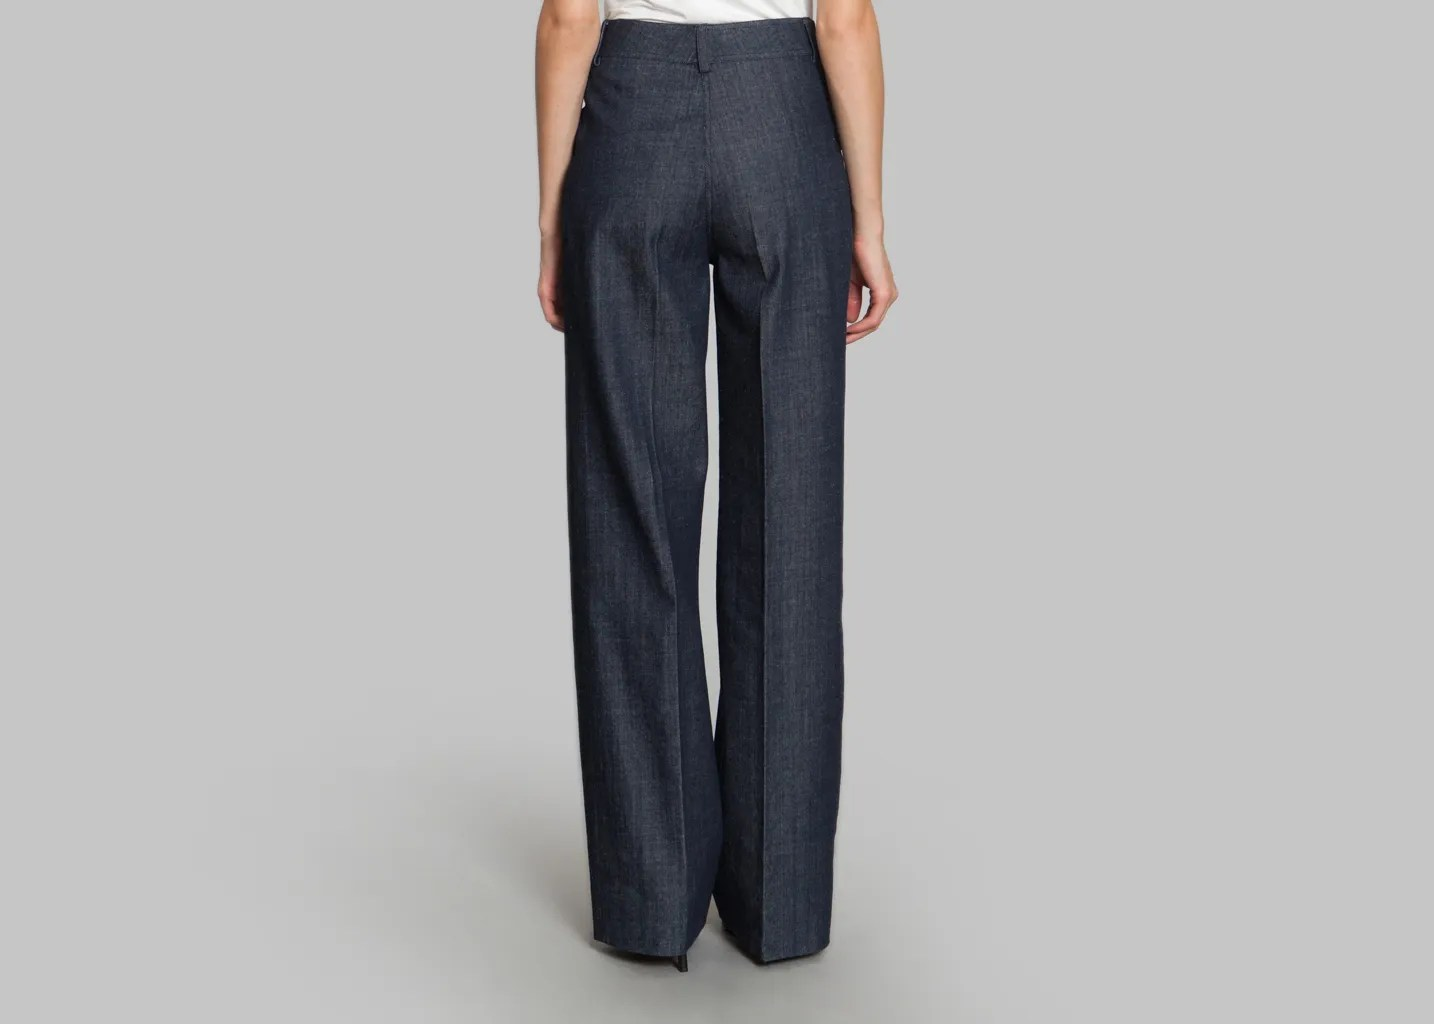 Jane Pant Raw Nathalie Dumeix L39exception